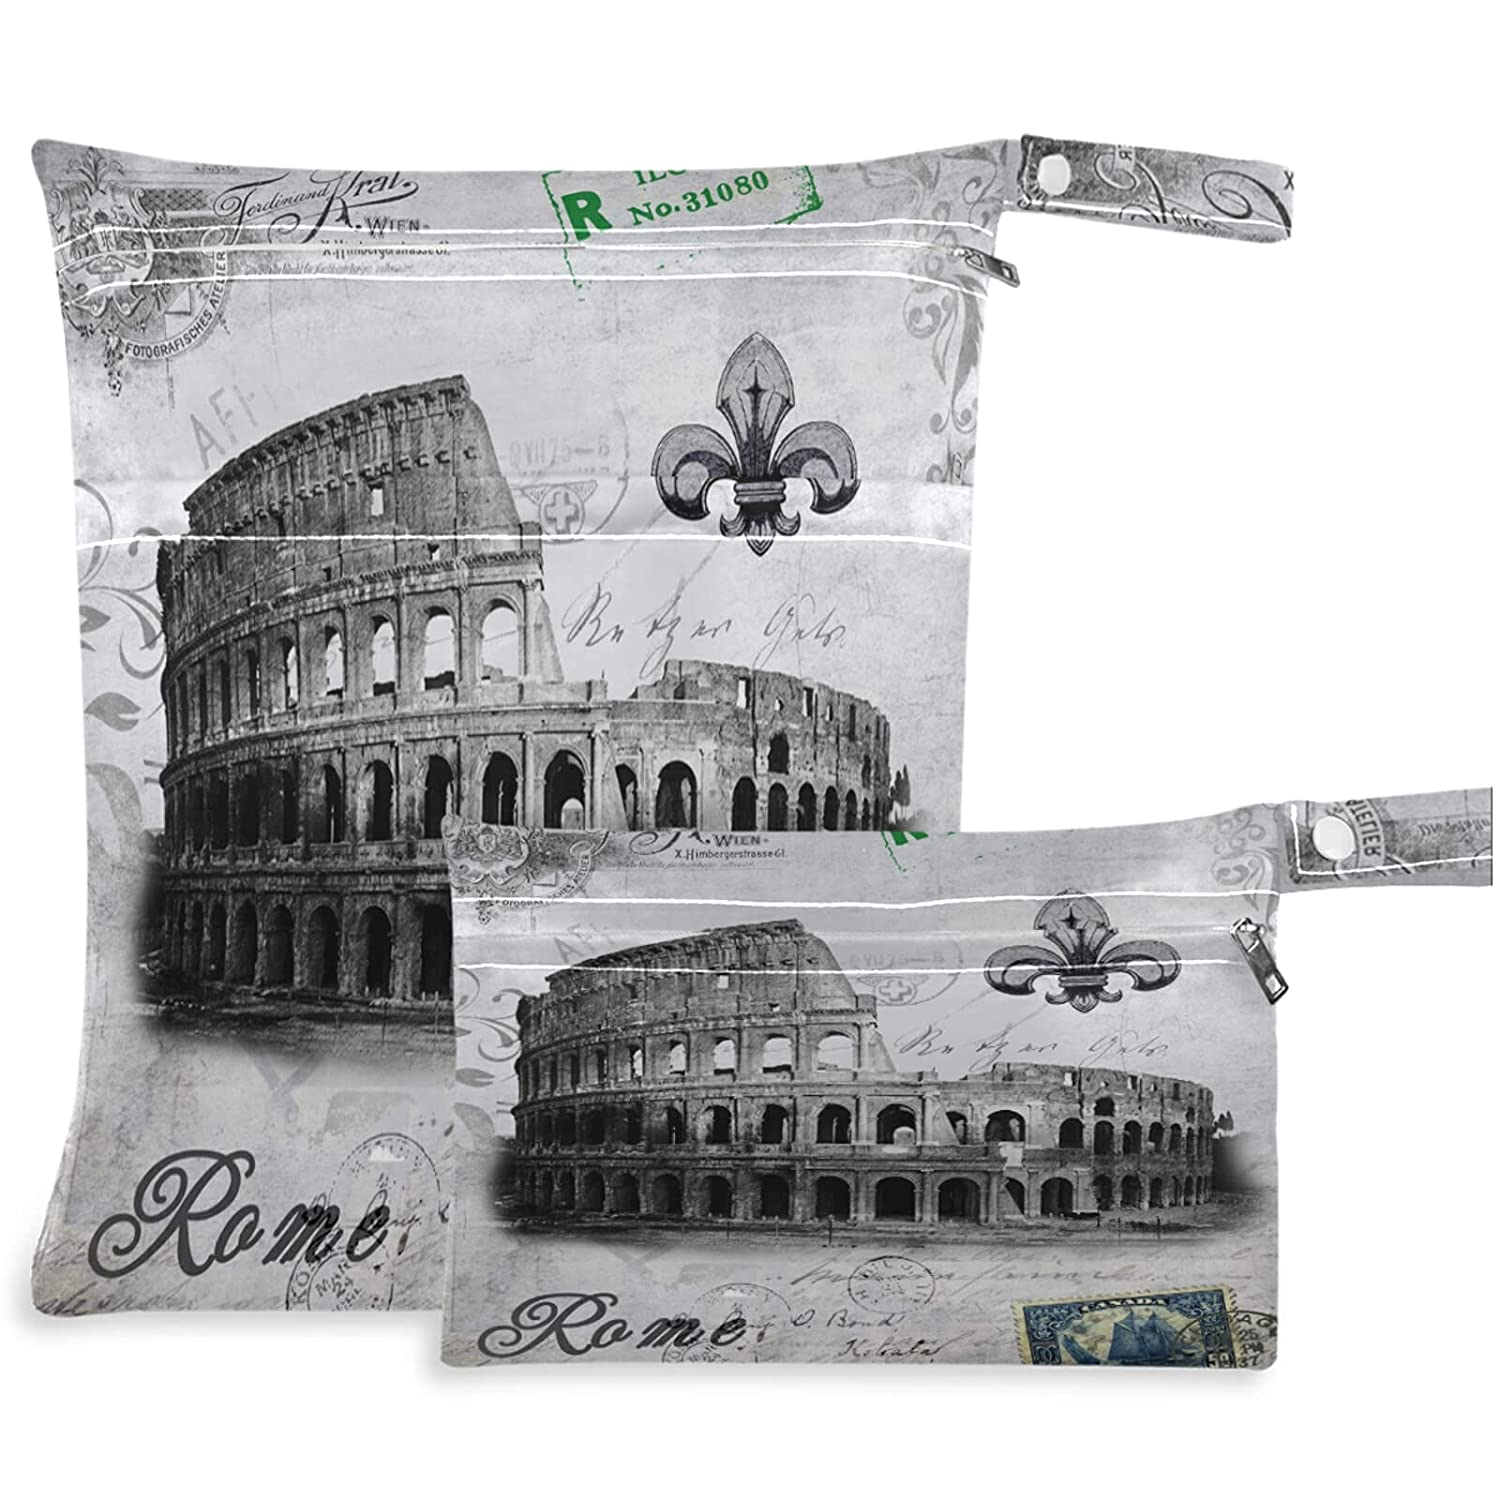 visesunny Discount is All items free shipping also underway Italy Ancient Rome 2Pcs Wet Bag with Pockets Zippered